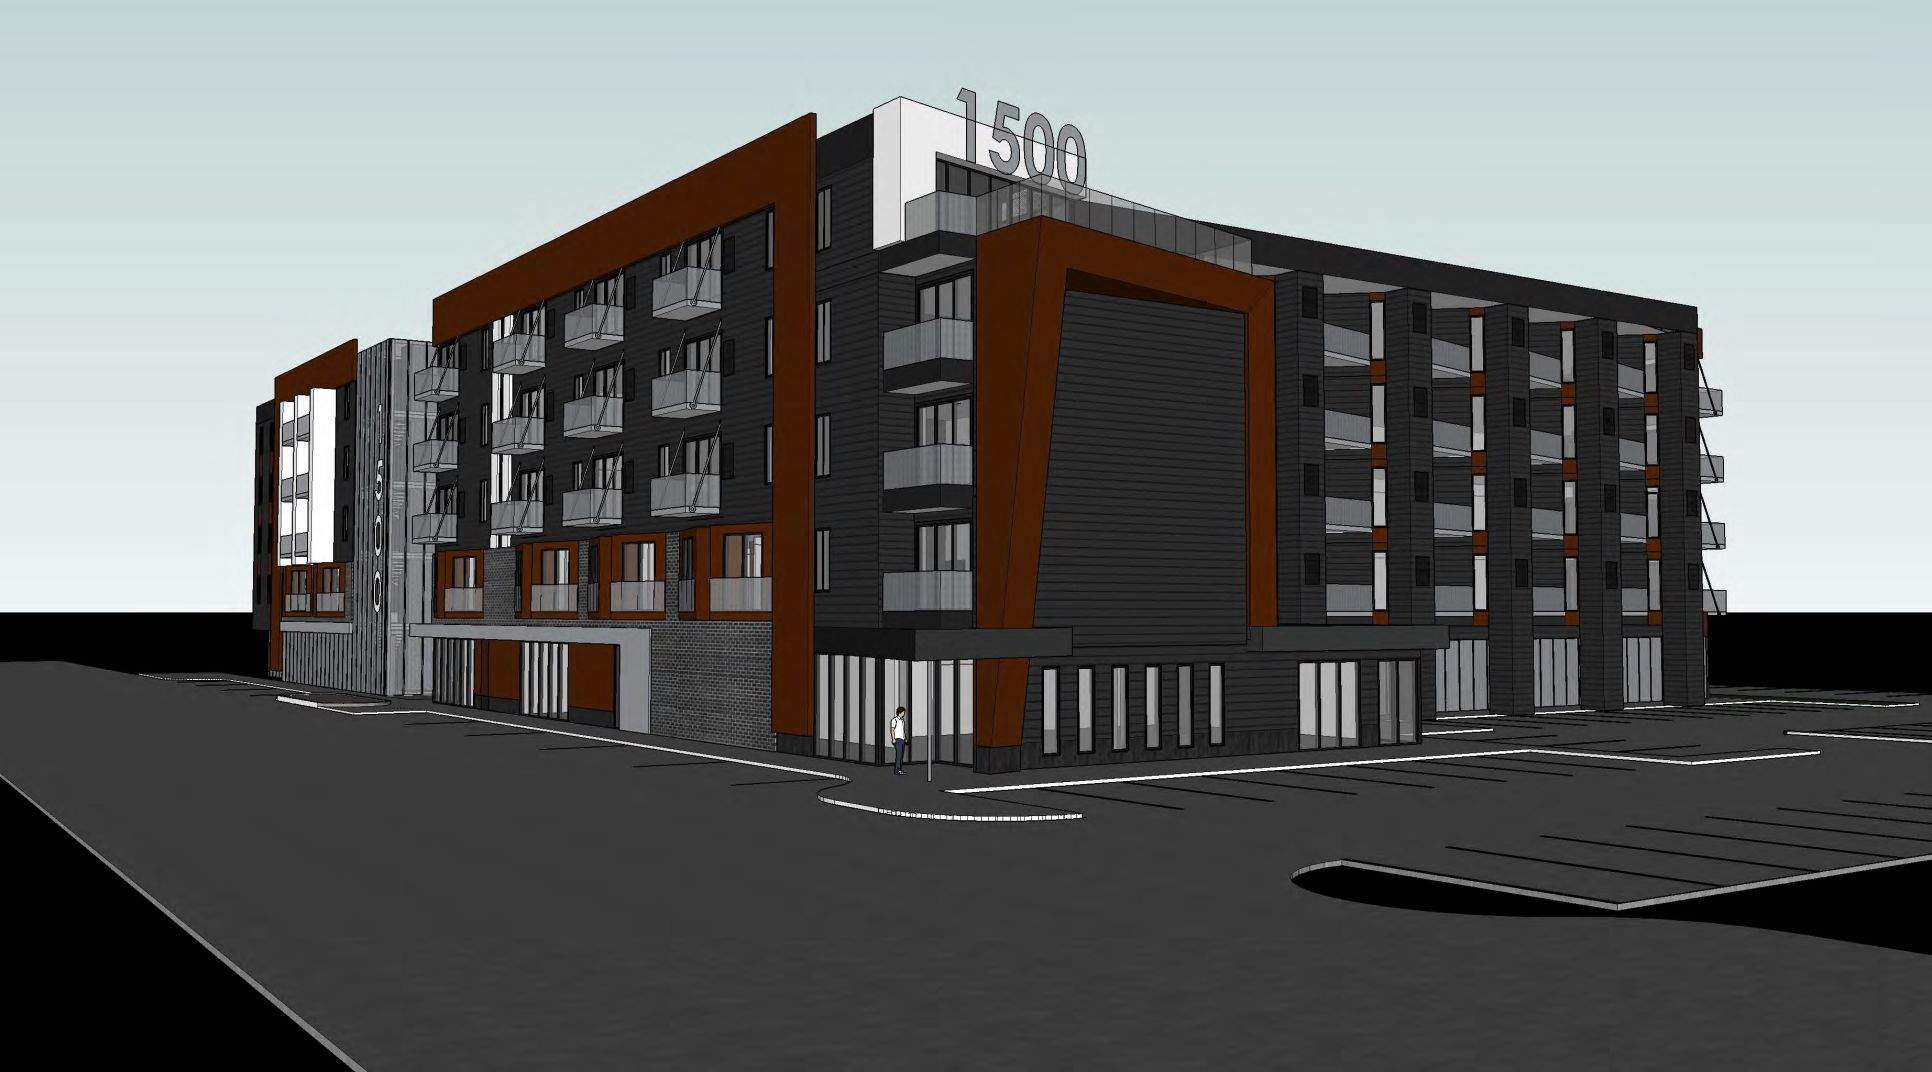 Developer Plans Apartment Complex In Downtown Bettendorf